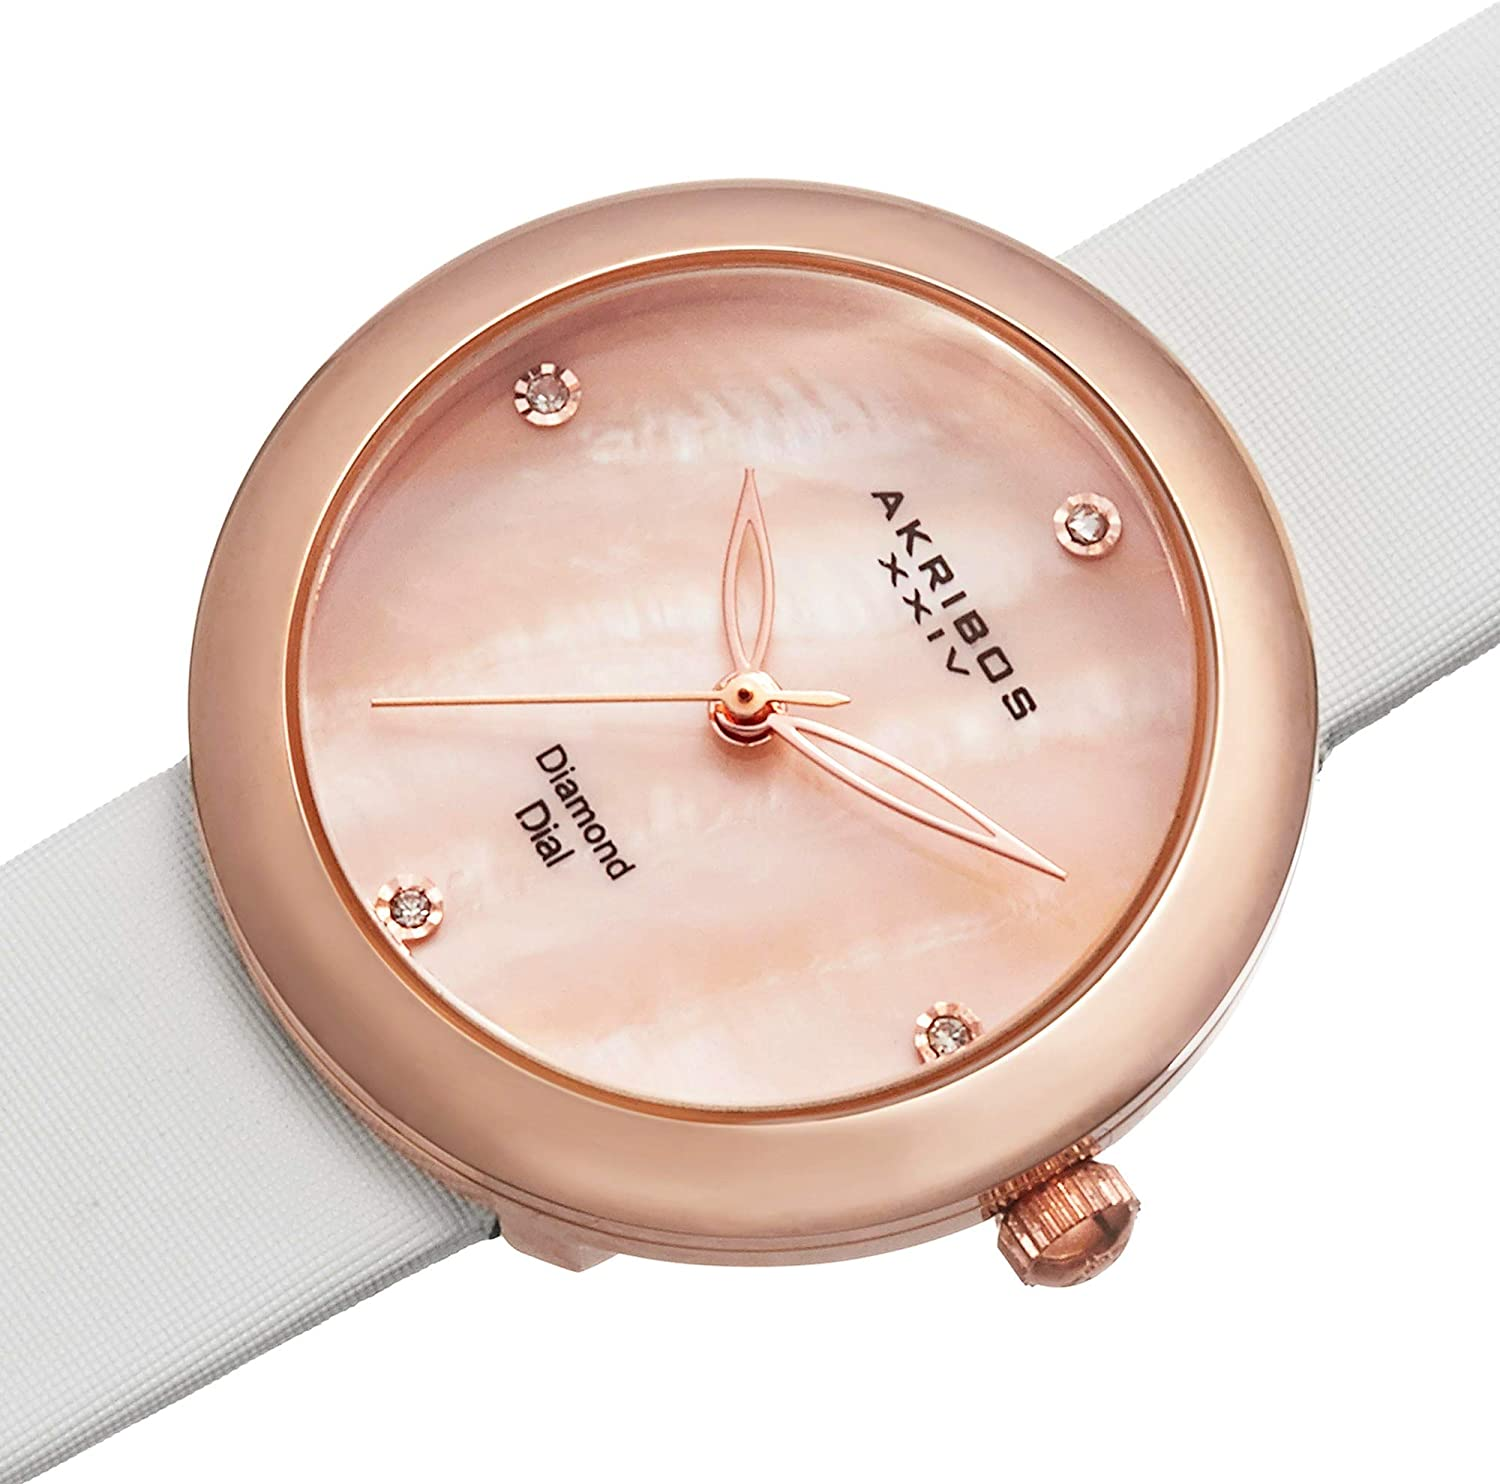 Akribos XXIV Women's MOP Watch - Impeccable Swiss Quartz Movement - 4 Diamond Hour Markers - Mother-of-Pearl Dial on Satin Strap Watch - AK687 Rose Gold/White